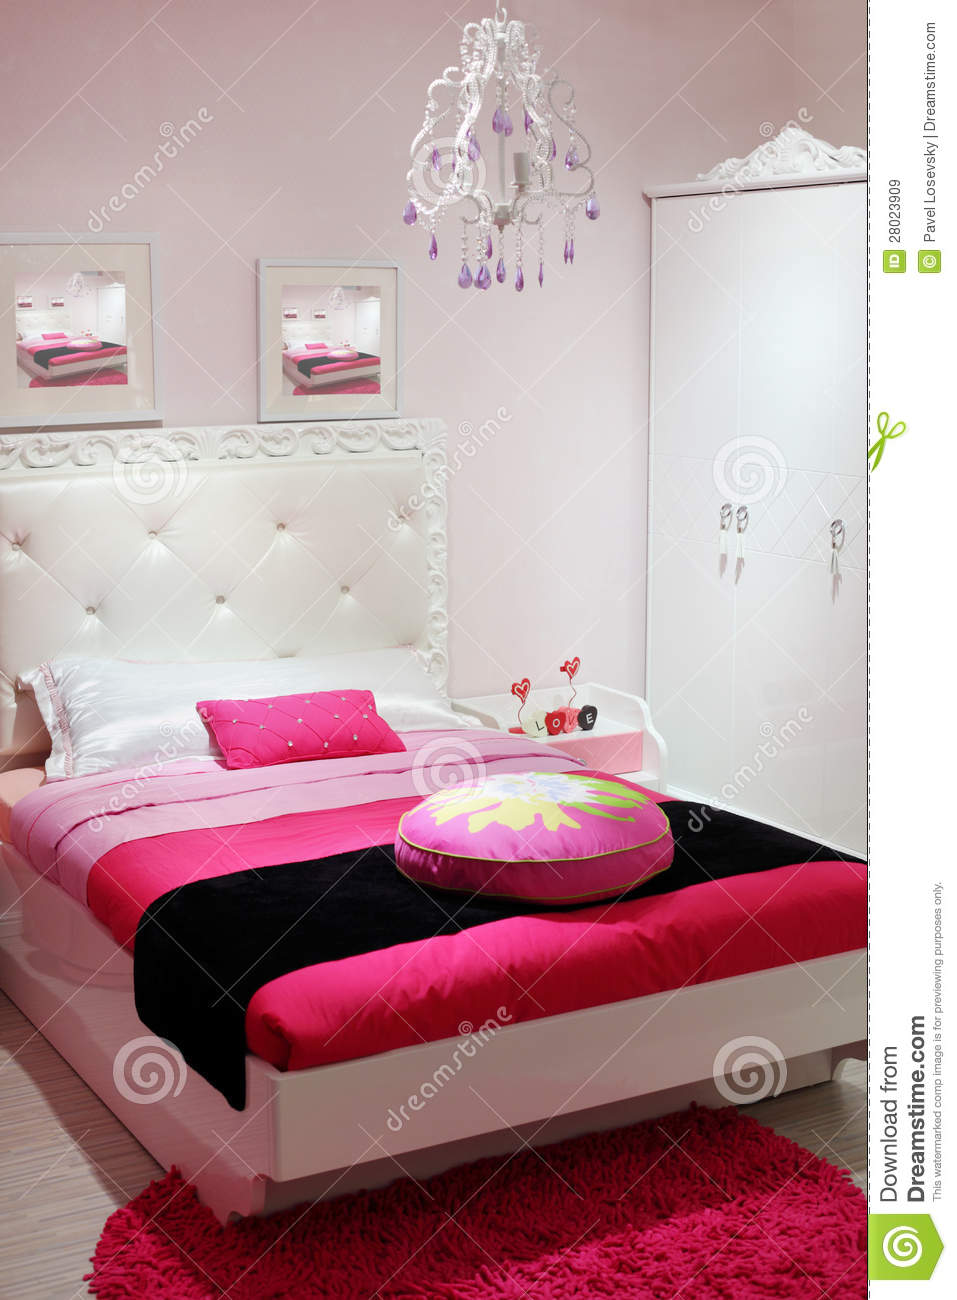 Bedroom With White Wardrobe And Pink Carpet Stock Image